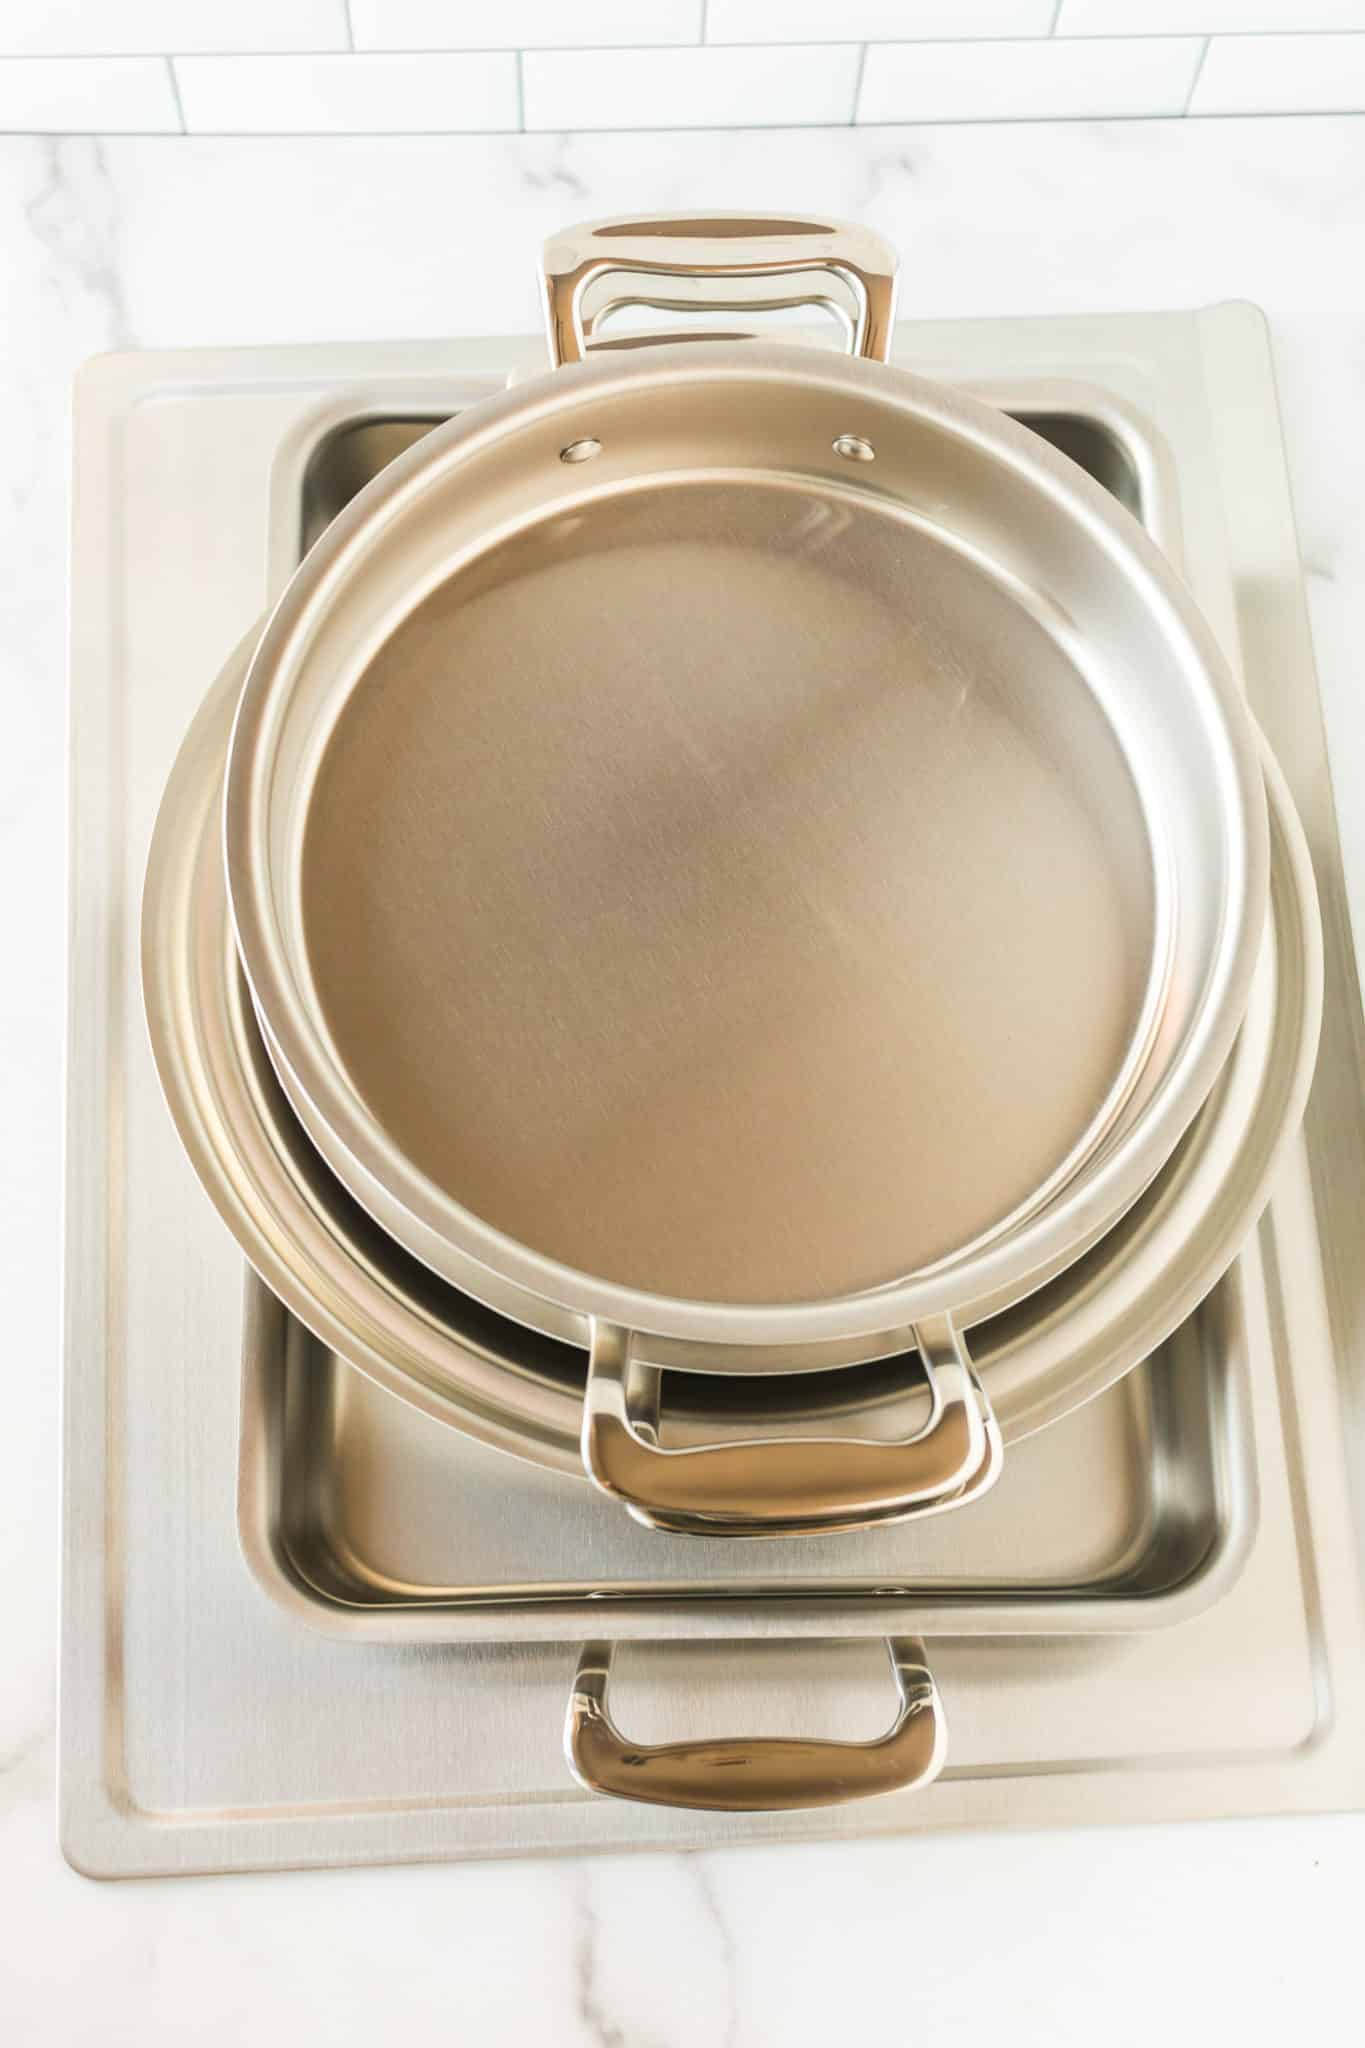 Stainless steel bakeware set made by 360 Cookware on a countertop